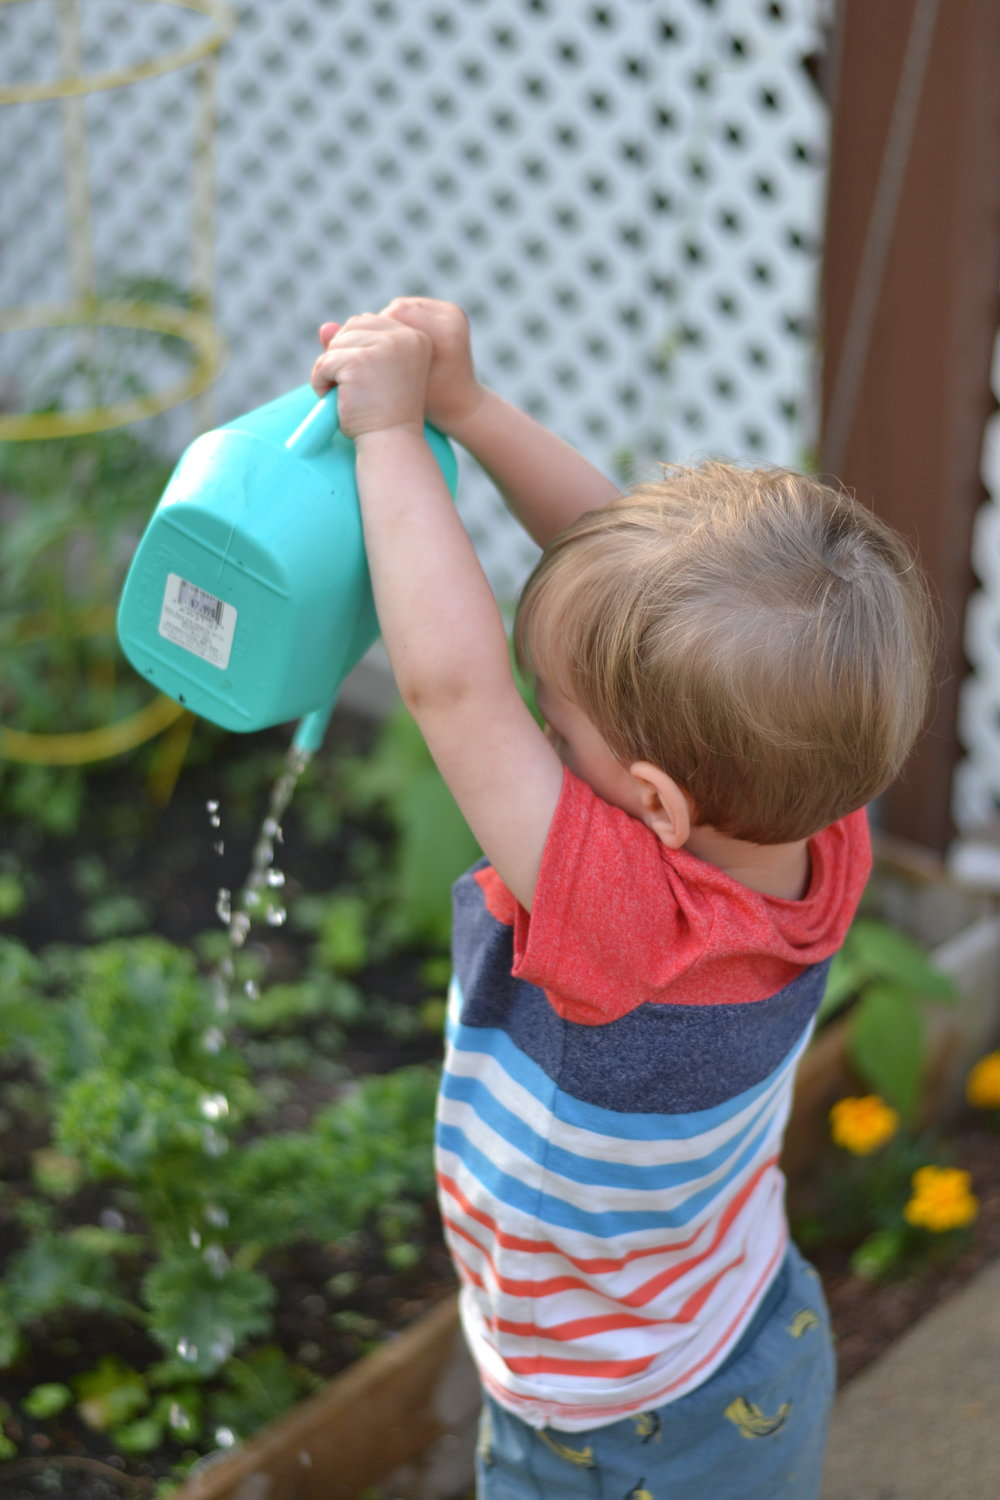 Sometimes watering feels like a chore, but sometimes it feels like a wonderful opportunity to watch Theo being Theo. It's also a great time to appreciate our garden and feel the happiness that is harvesting kale and eating freshly picked tomatoes.